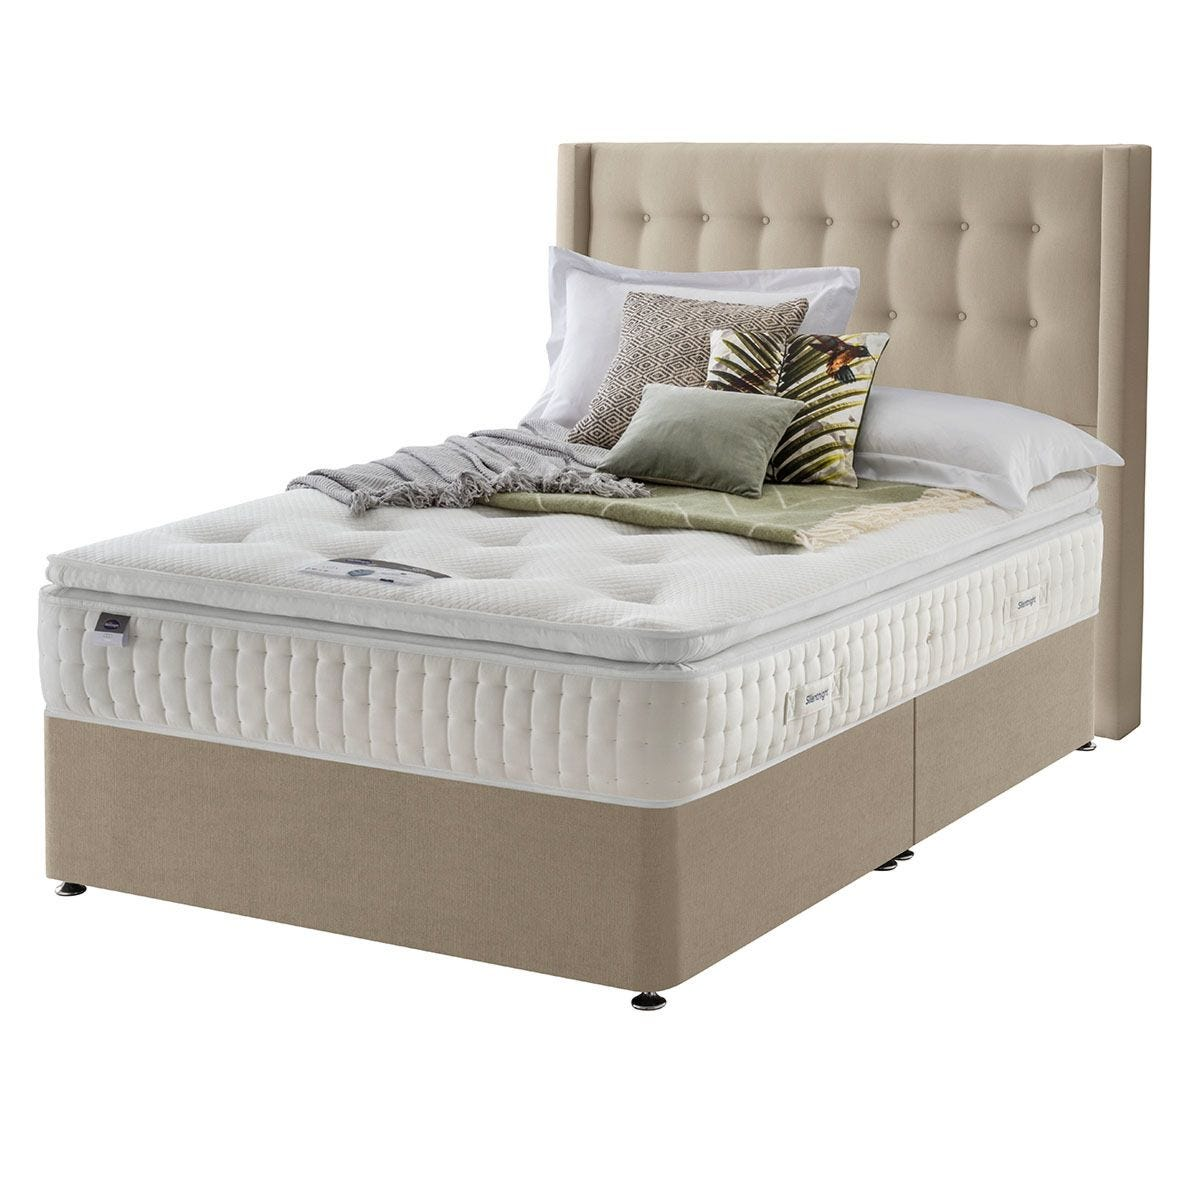 Silentnight Mirapocket Latex 1400 Non Storage Divan Bed - Sandstone Double